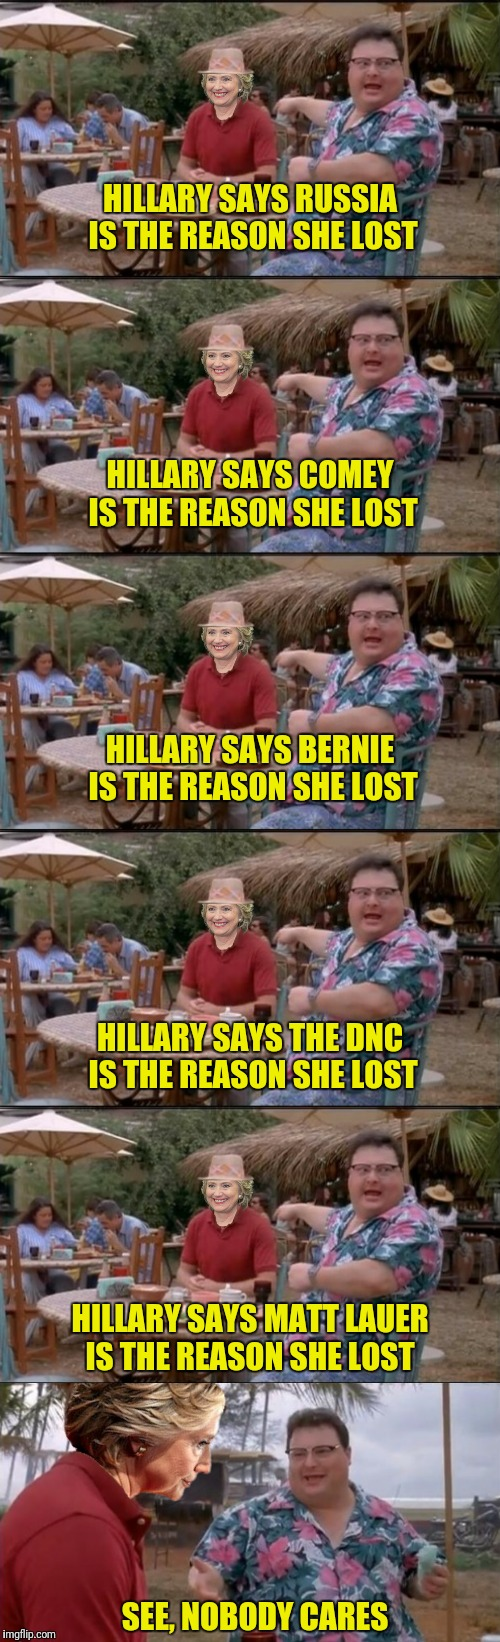 Please note:  the unedited version of this meme did not fit on imgflip.  Please feel free to add excuses. | HILLARY SAYS RUSSIA IS THE REASON SHE LOST SEE, NOBODY CARES HILLARY SAYS COMEY IS THE REASON SHE LOST HILLARY SAYS BERNIE IS THE REASON SHE | image tagged in hillary clinton,russia,jim comey,bernie sanders,dnc,matt lauer | made w/ Imgflip meme maker